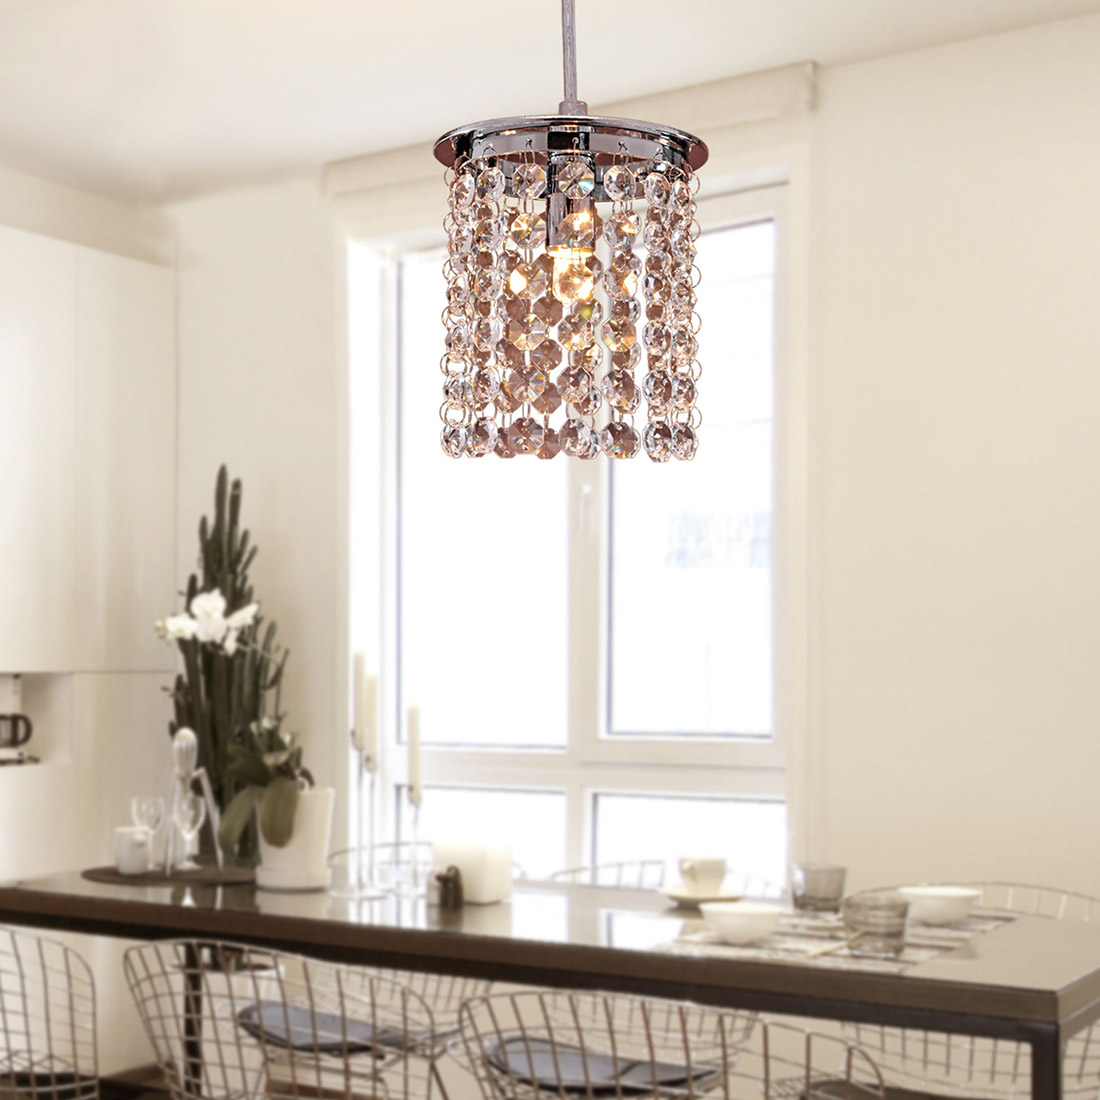 Ceiling Light Fixture Dining Room : Crystal ceiling light modern chandelier pendant kitchen